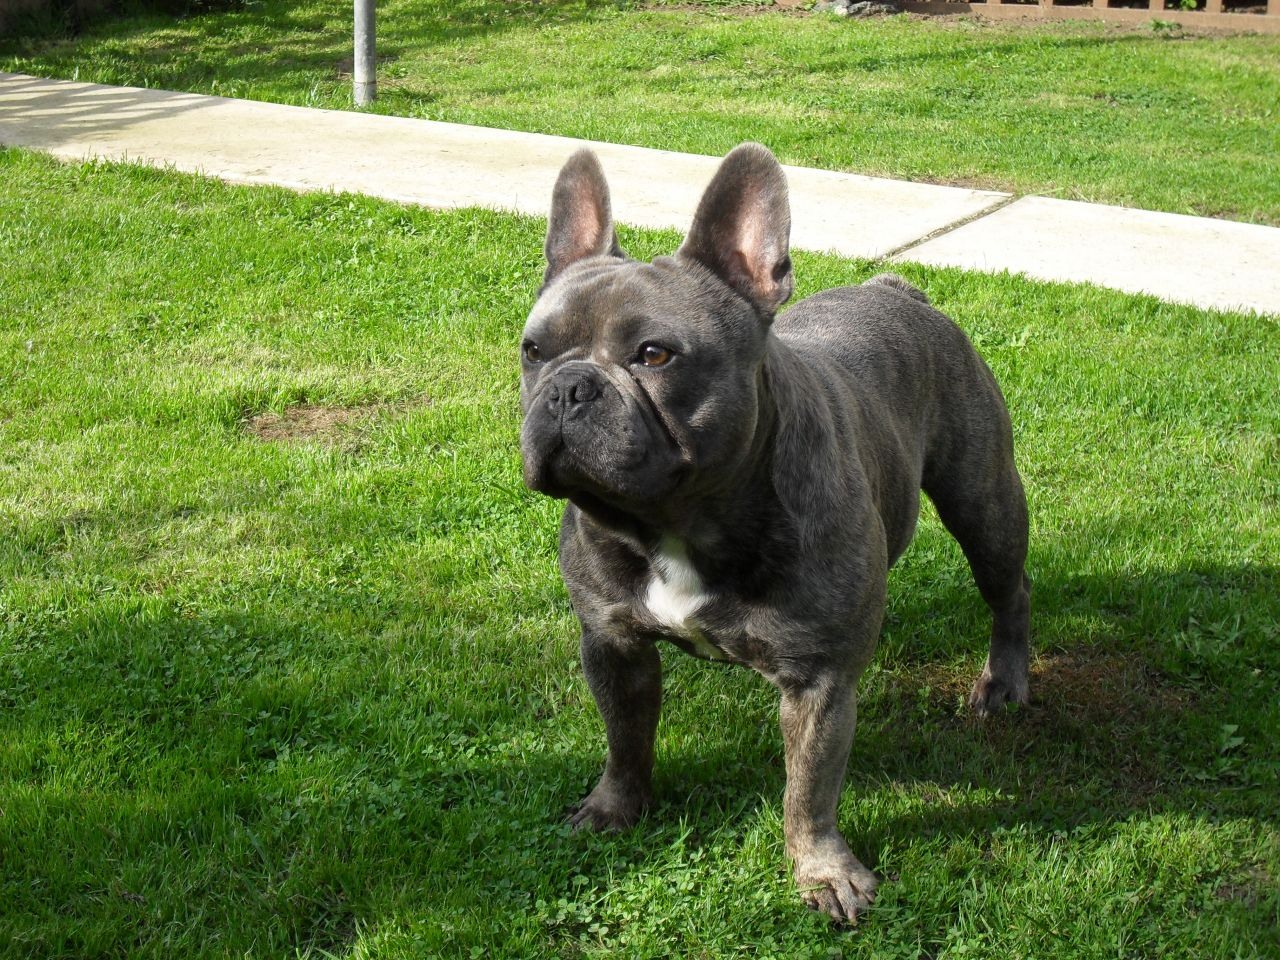 How To Care For A Brindle French Bulldog - Image By pets4homes